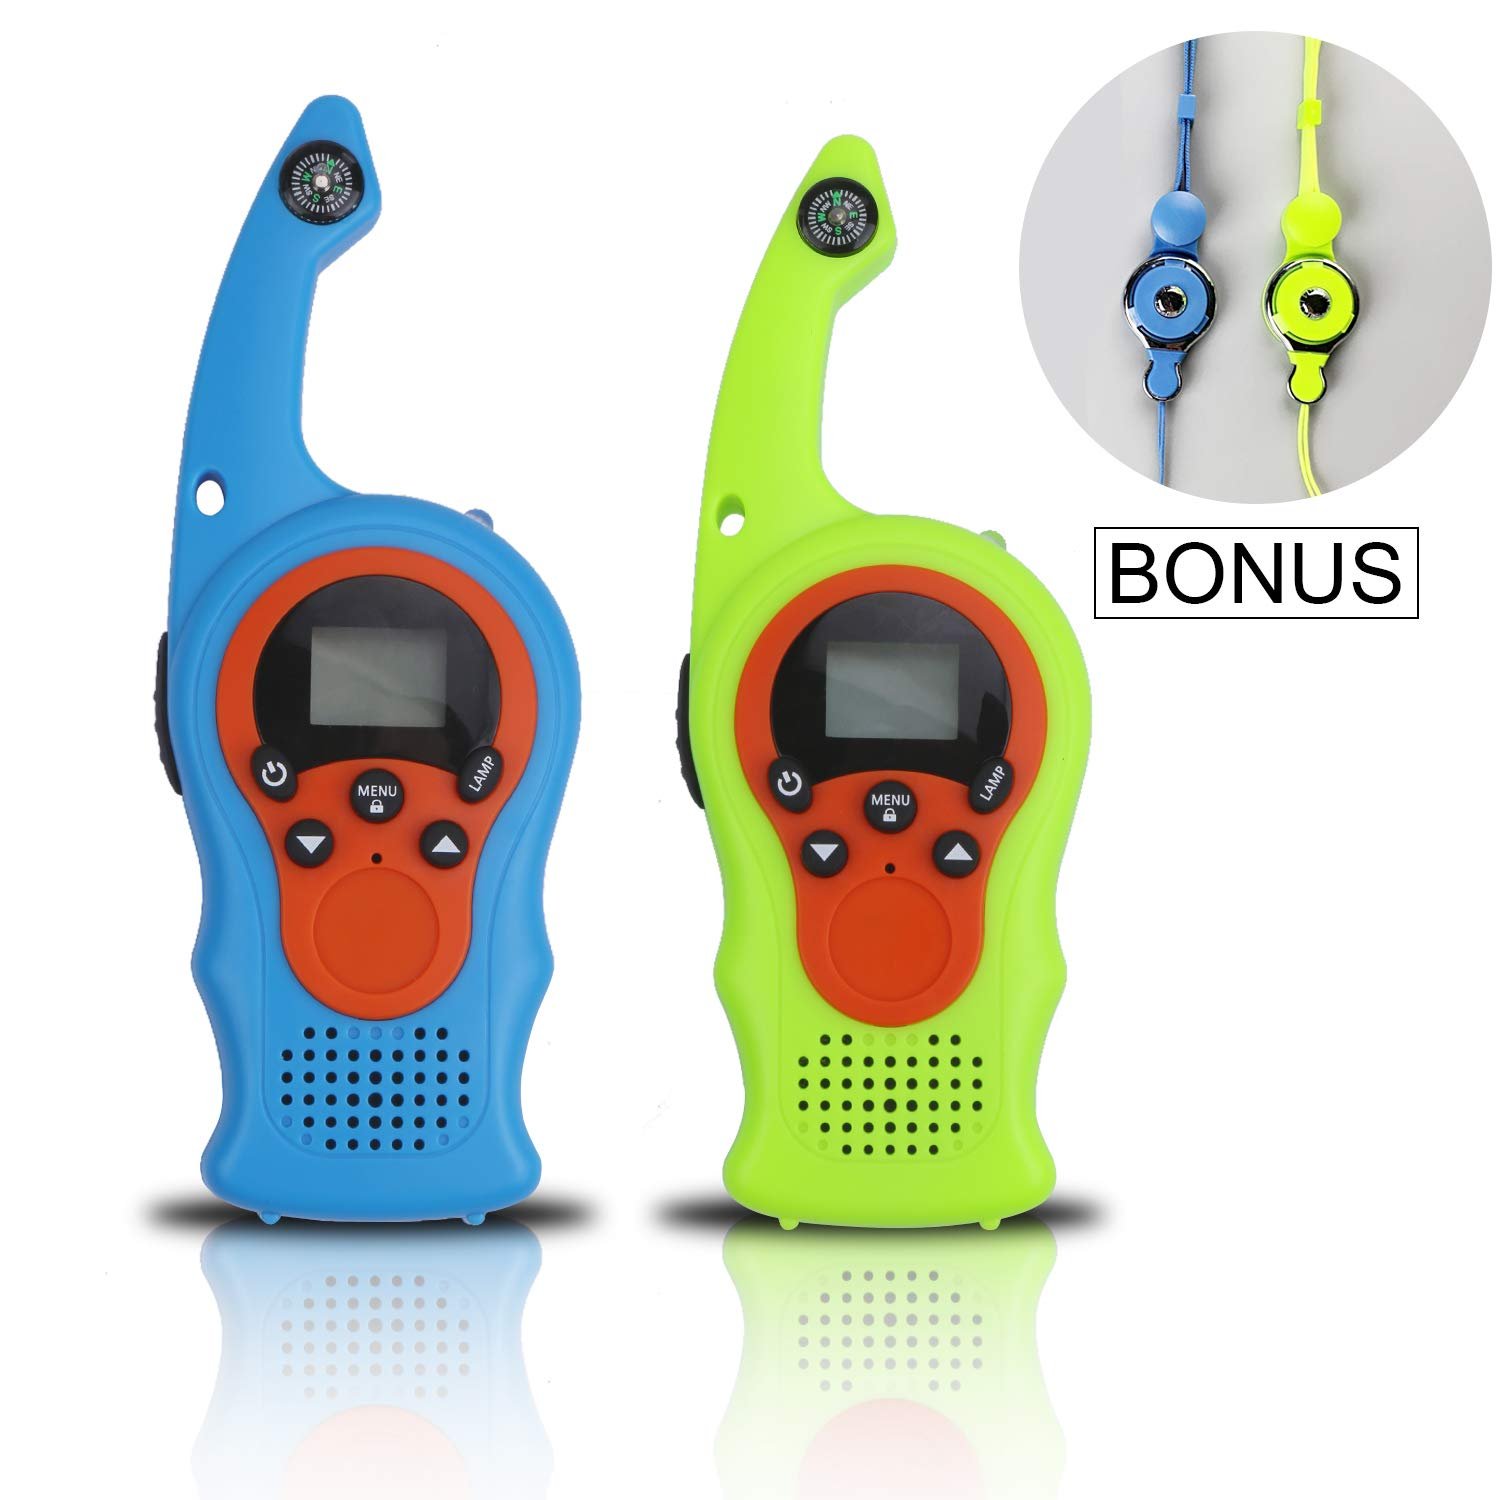 izBuy Kids Walkie Talkies, 22 Channels 3 Miles Range with Compass Flashlight, 2 Way Radio Walkie Talkie for Boys and Girls, 2 Pack Walkie Talkies with Lanyards, Ideal Outdoor Indoor Partner